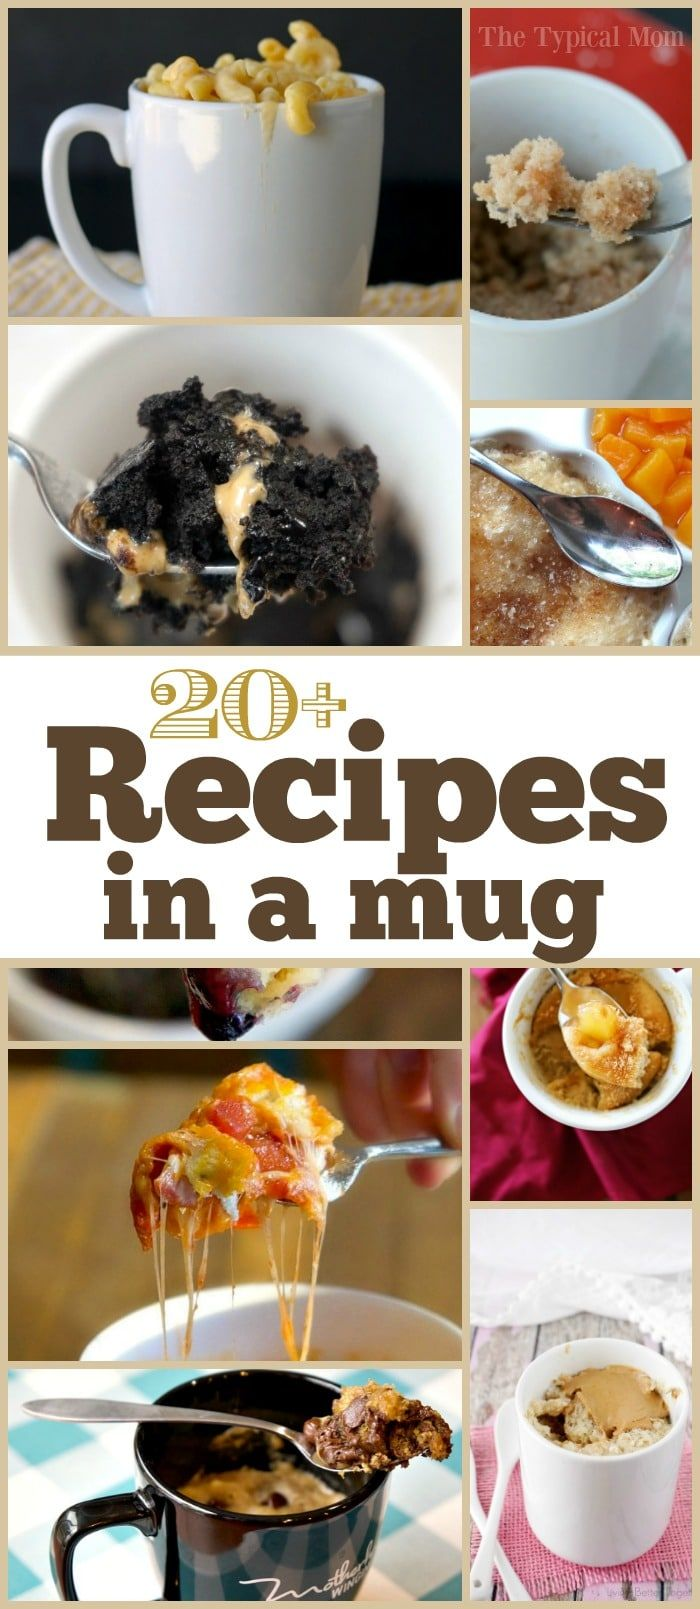 Mug recipes rock!! Here are a bunch of dinner and dessert mug recipes to choose from that take about 1 minute to make and taste delicious!